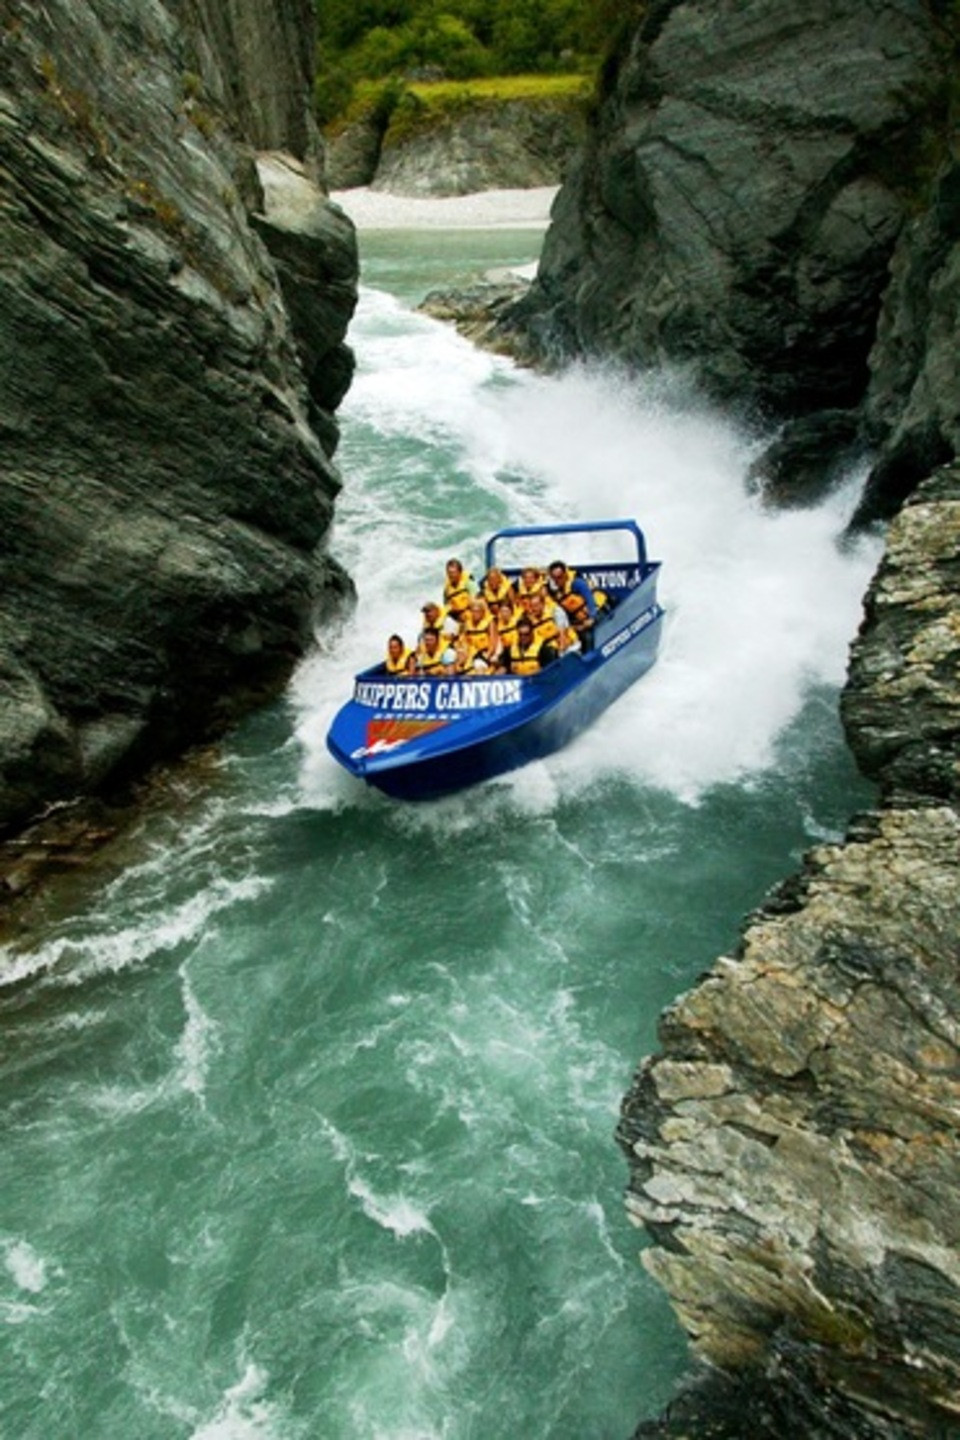 Skippers Canyon high speed jet boat in New Zealand